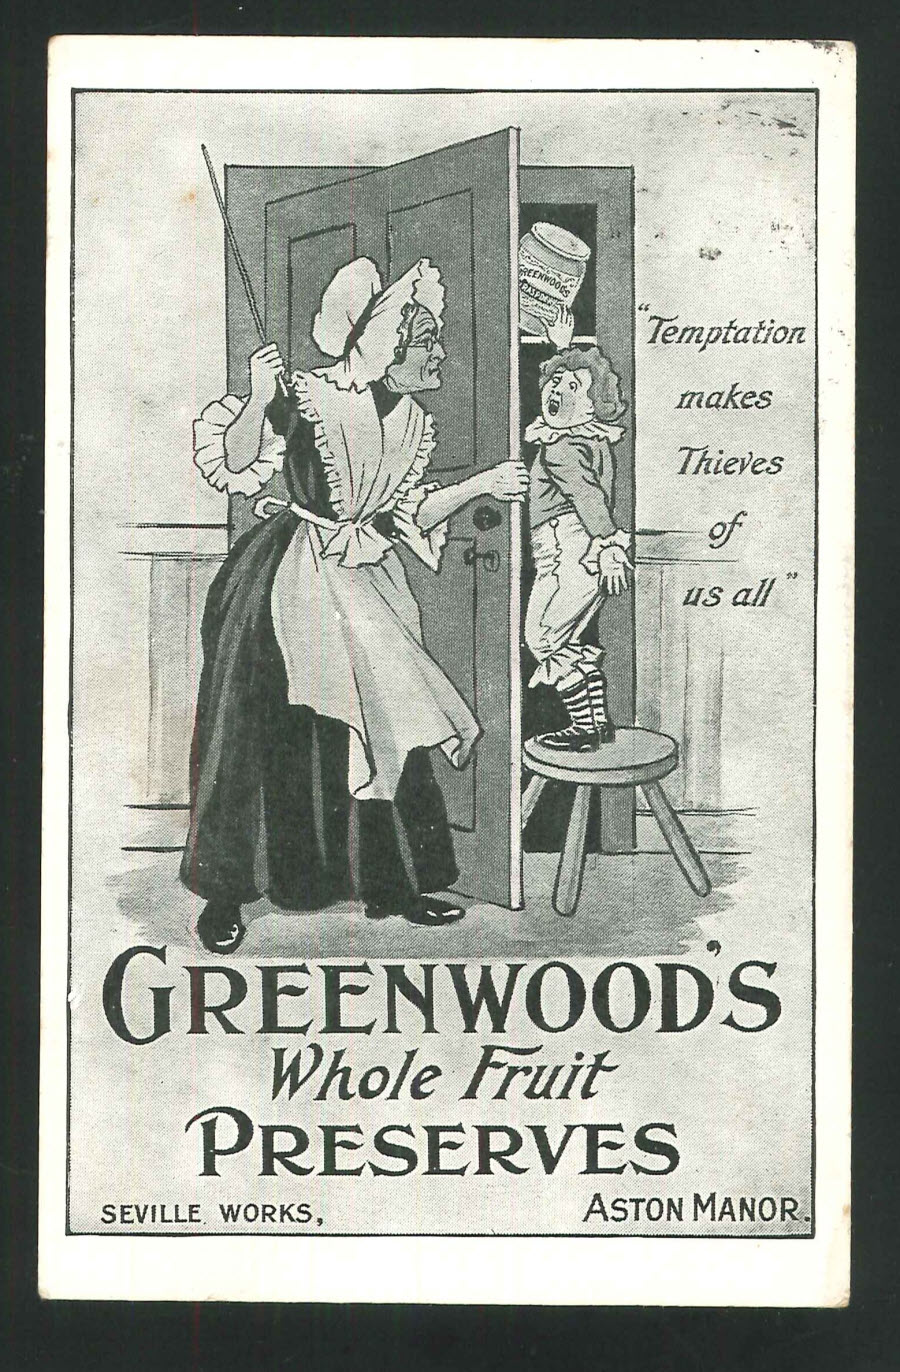 Postcard Birmingham Greenwoods Whole Fruit Preserves Advert Seville Works, Aston Manor1904